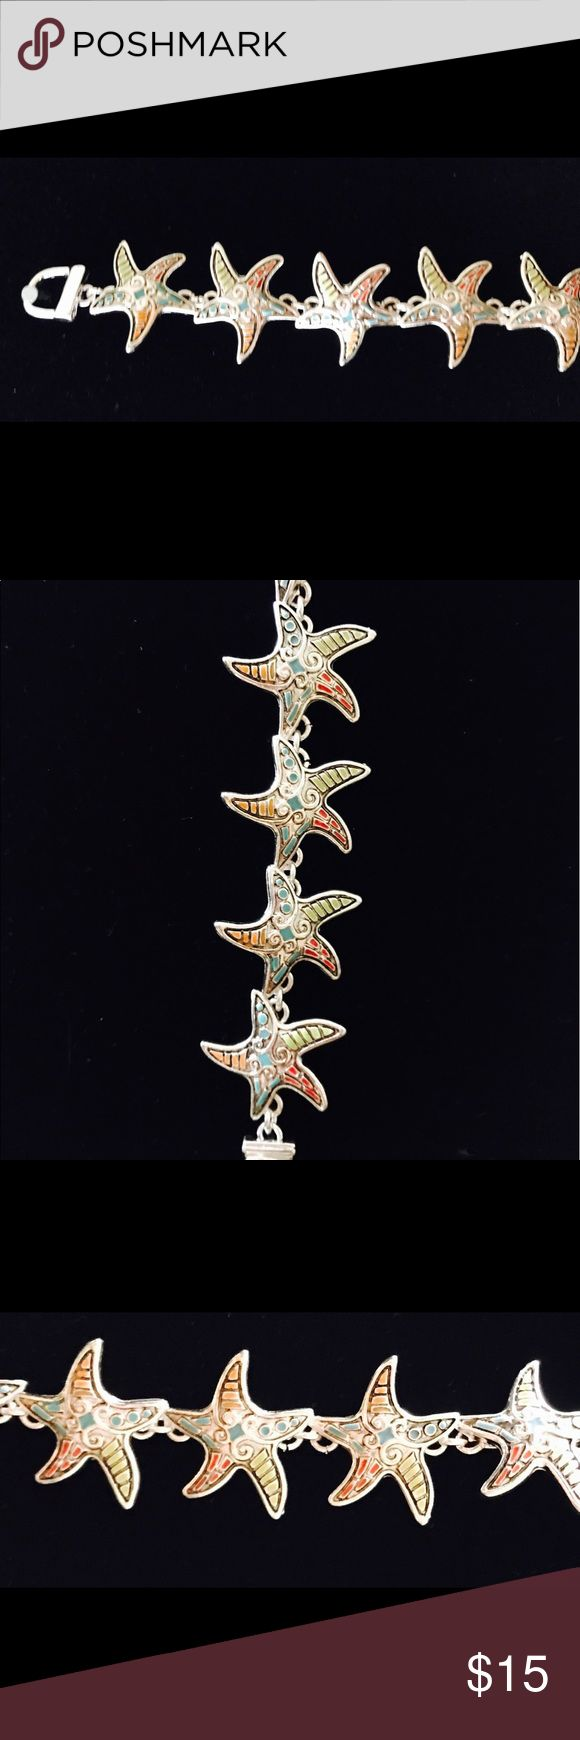 """Multi Color Starfish Bracelet Multi Color Starfish Silver Bracelet. Magnetic closure, Size 7"""" New in package. Accessories"""